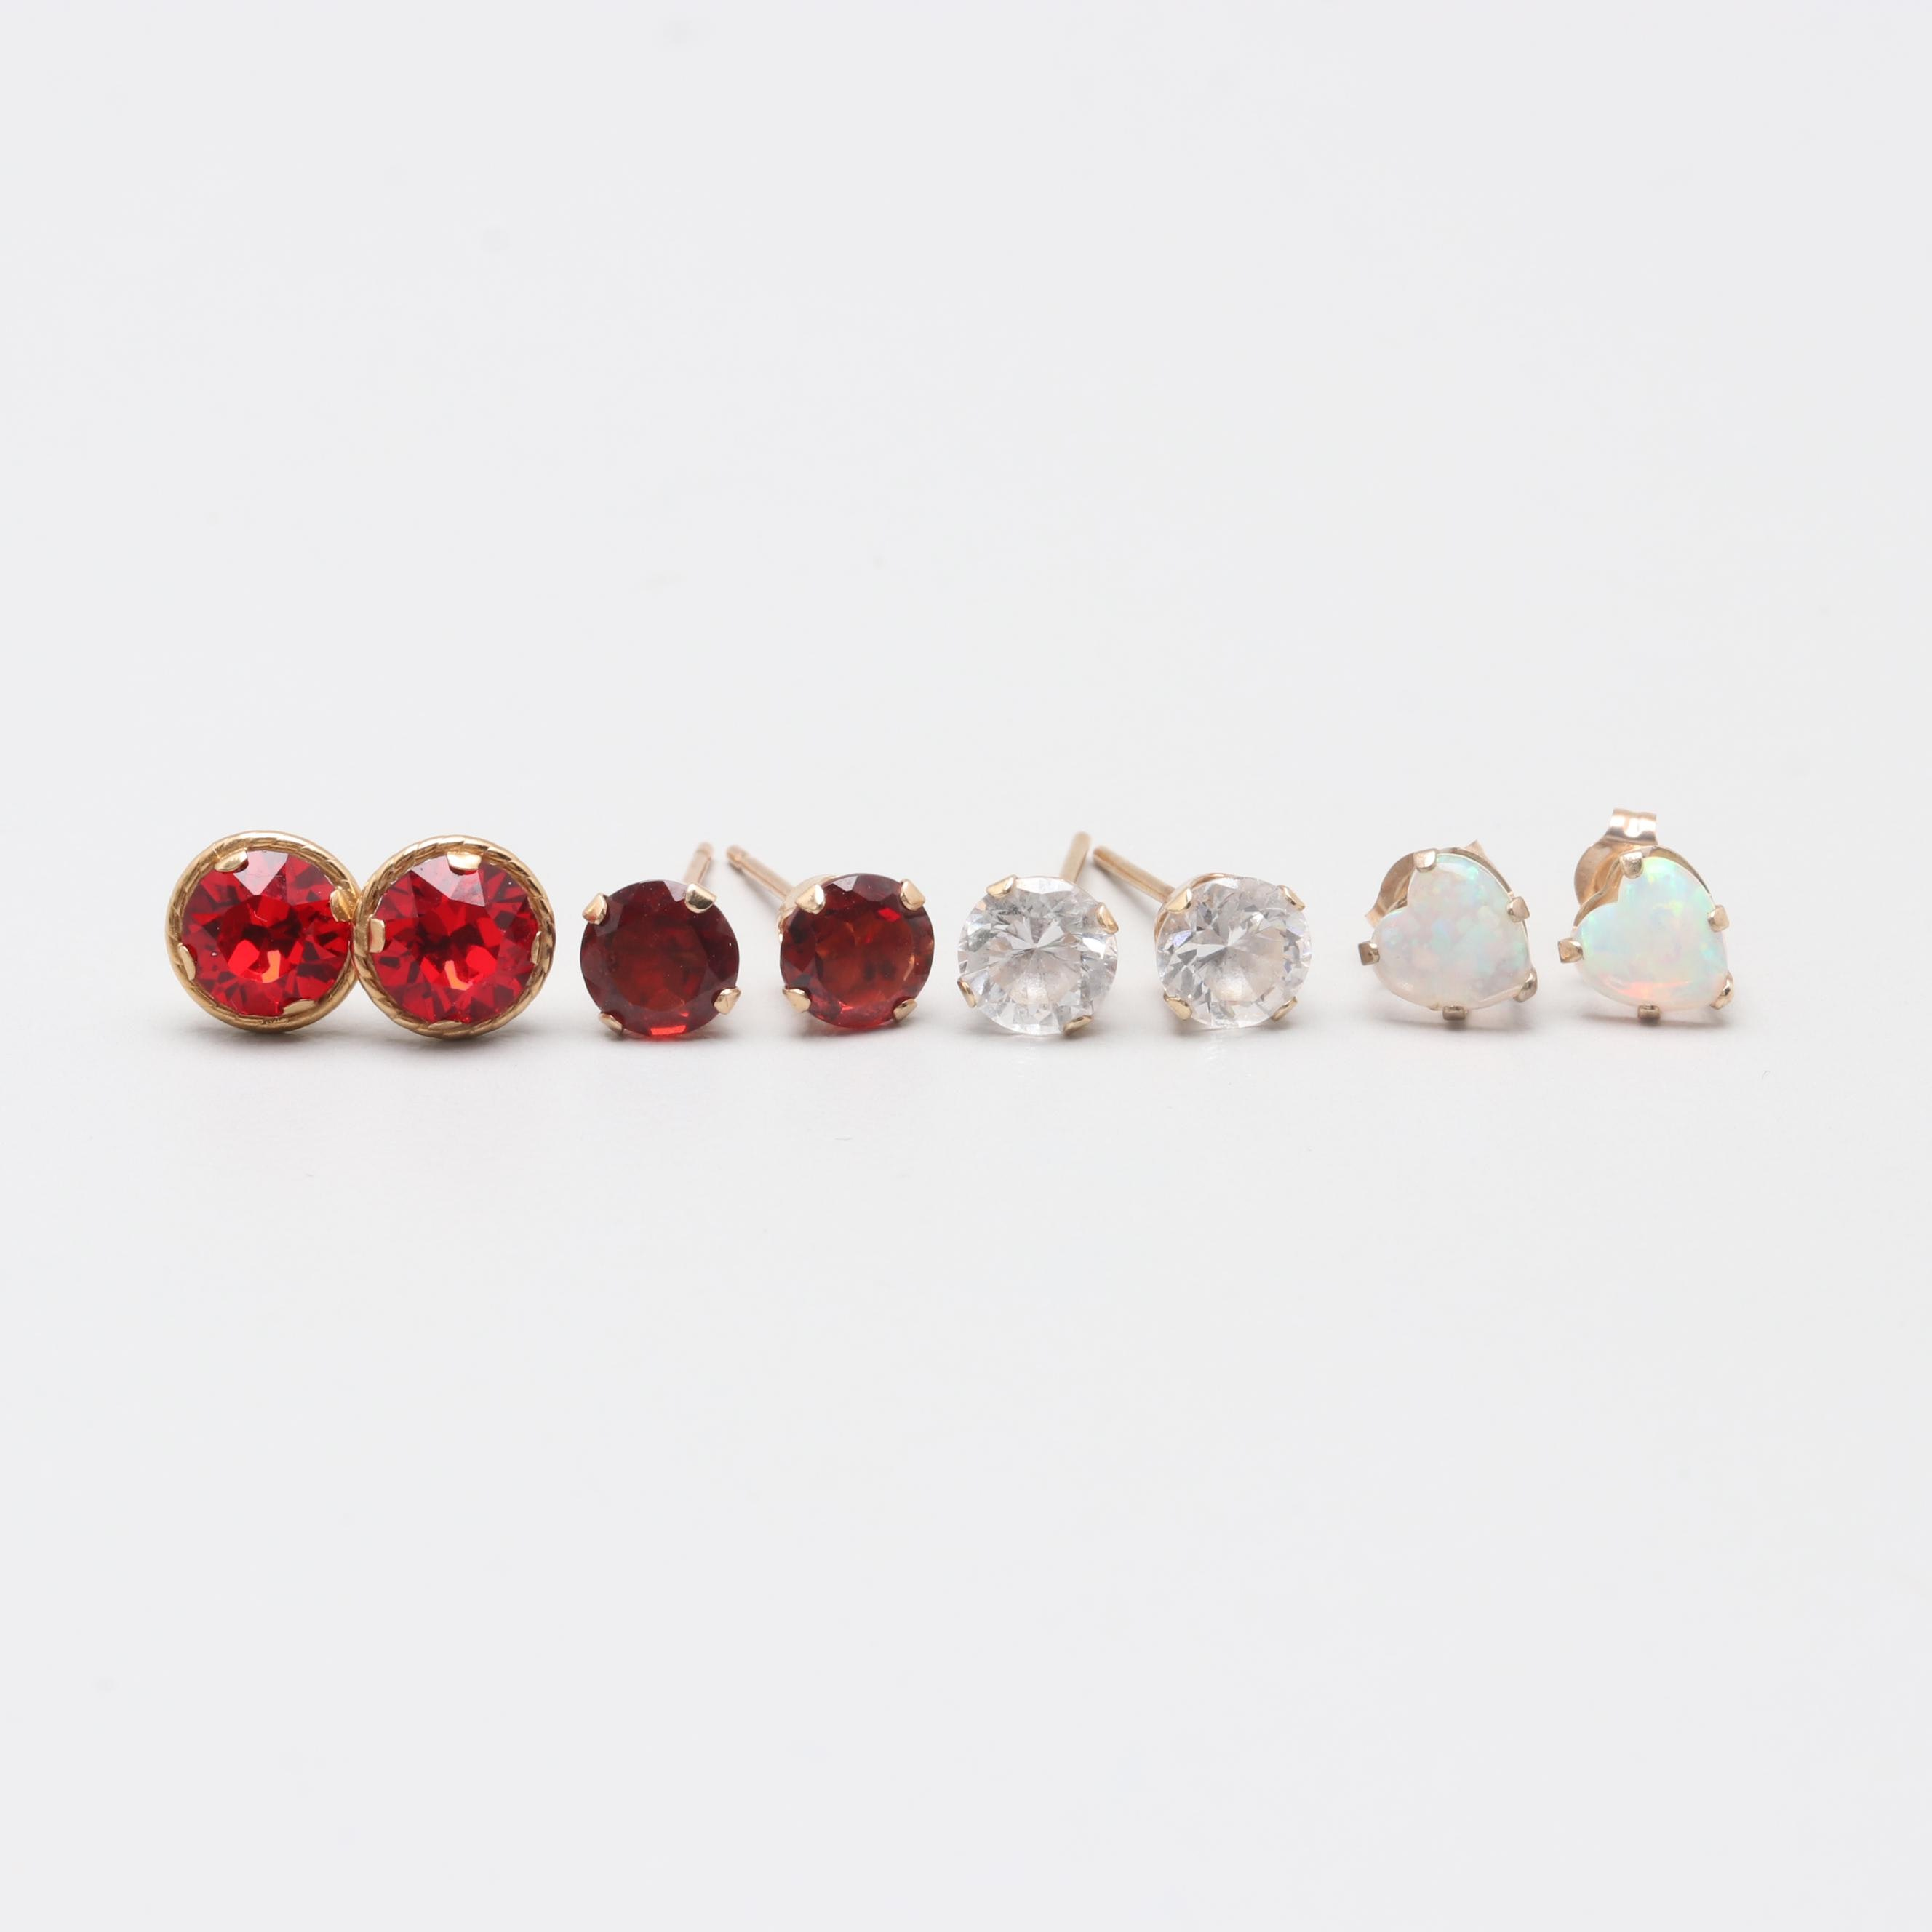 10K Yellow Gold Gemstone Stud Earrings Featuring Synthetic Opal and Garnet